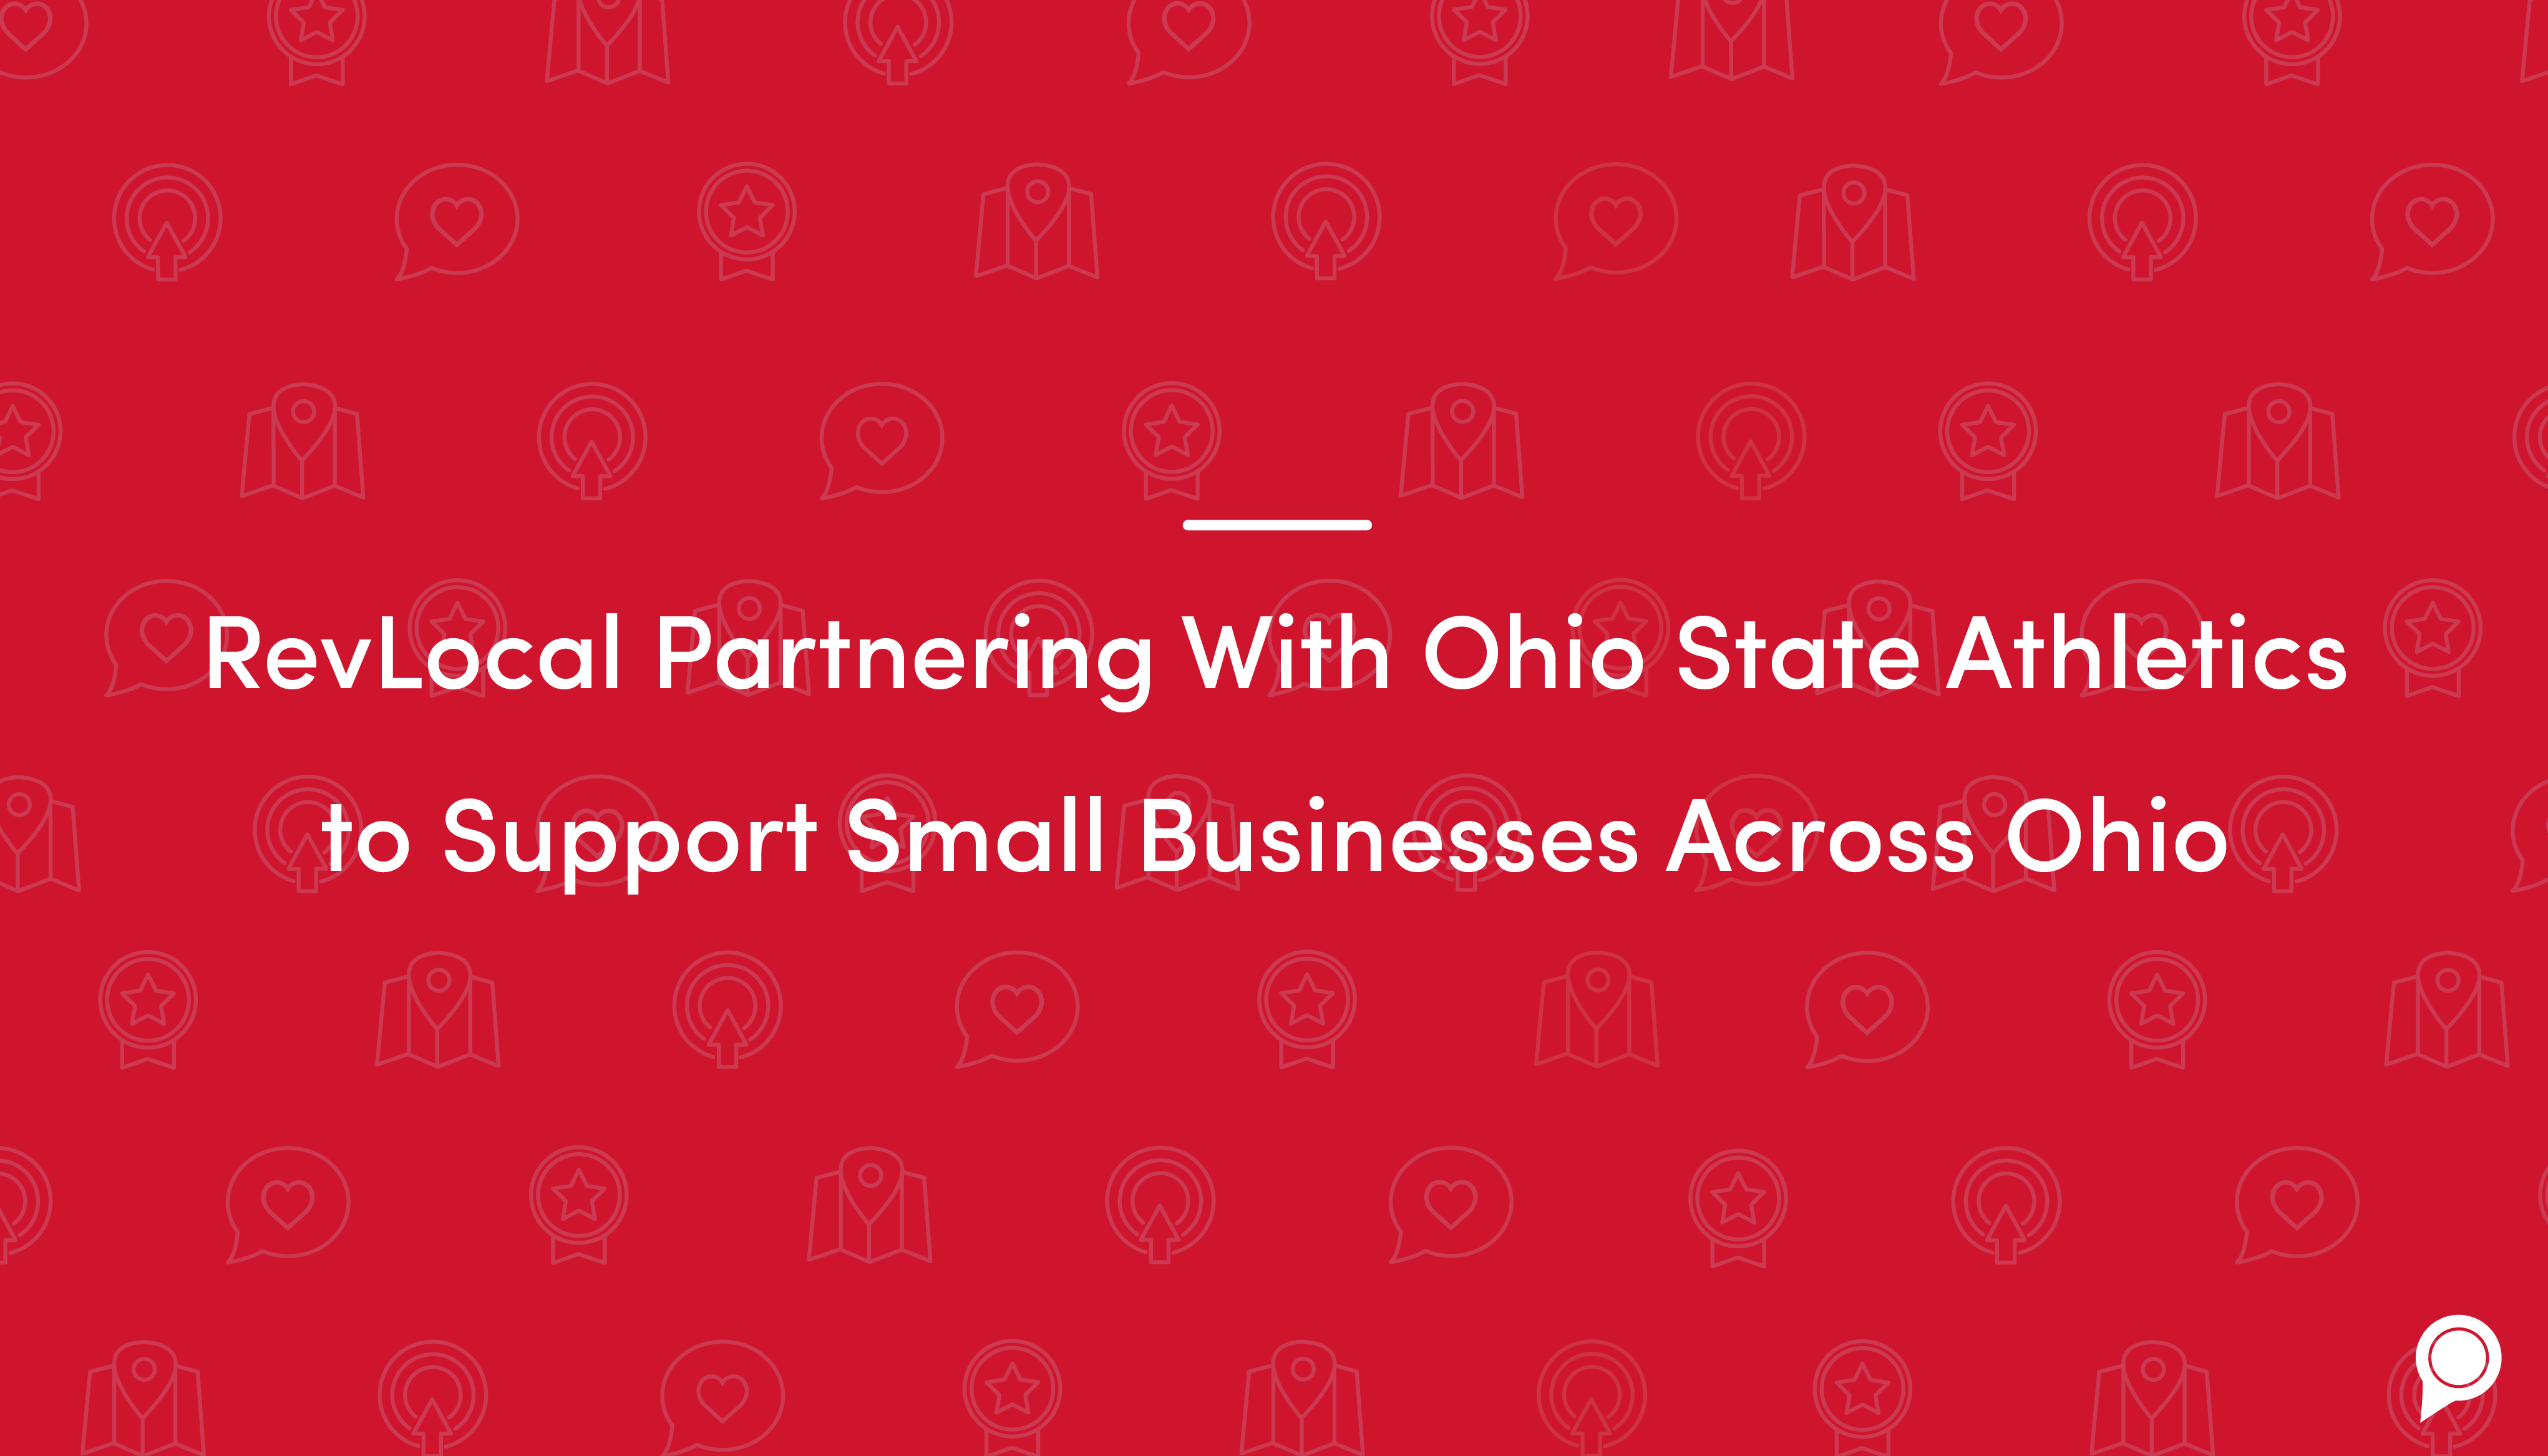 RevLocal Partnering With Ohio State Athletics to Support Small Businesses Across Ohio